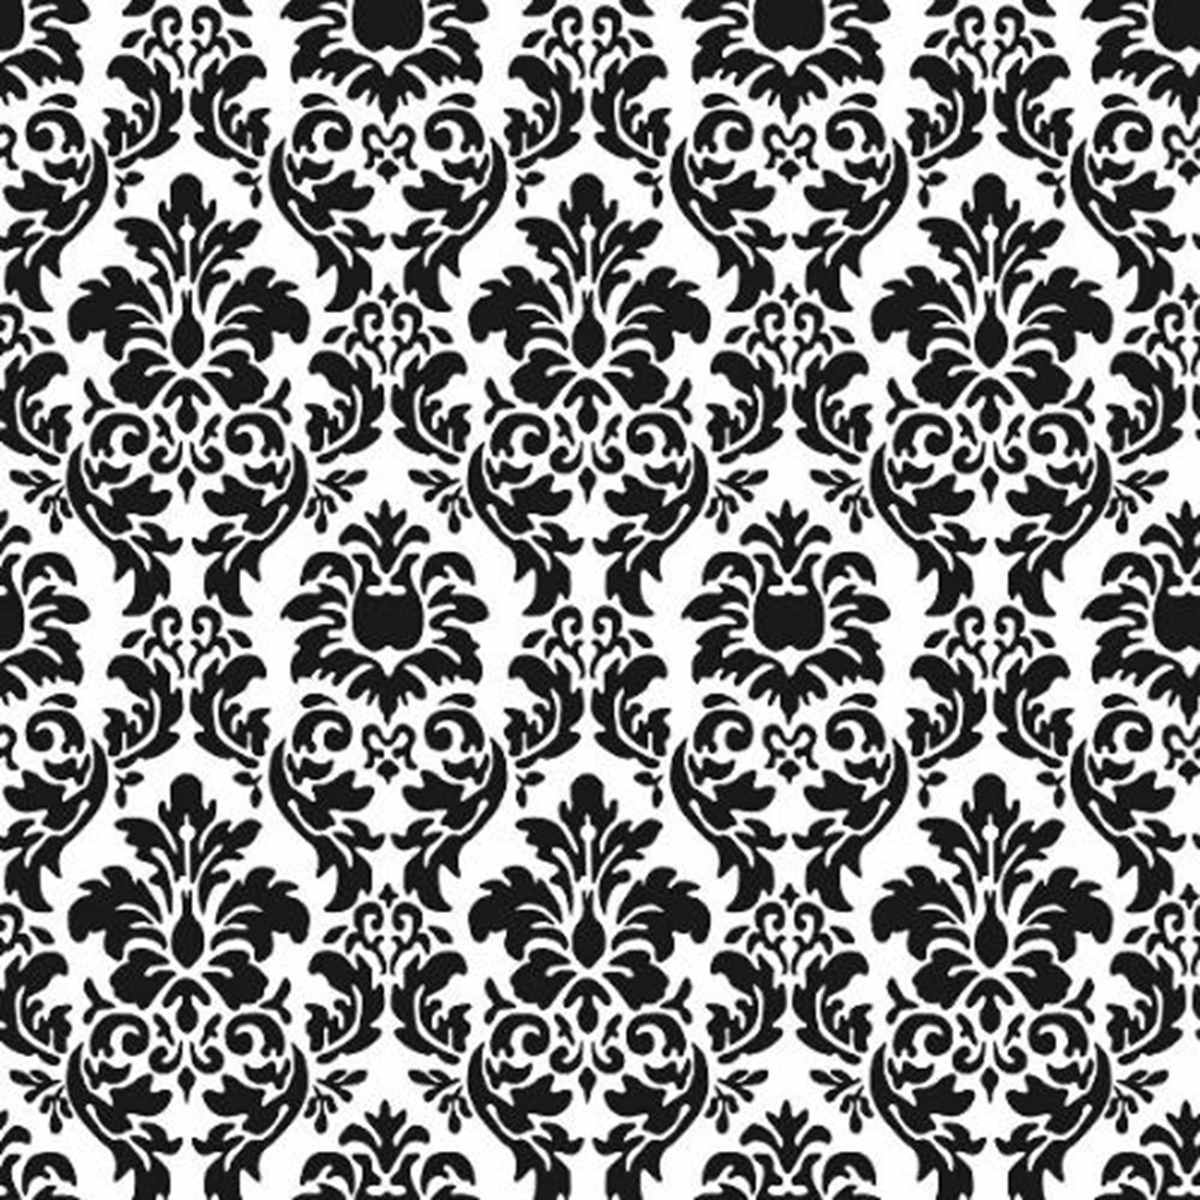 Papel de parede amarie arabesco branco e preto r 217 80 for Papel de pared negro